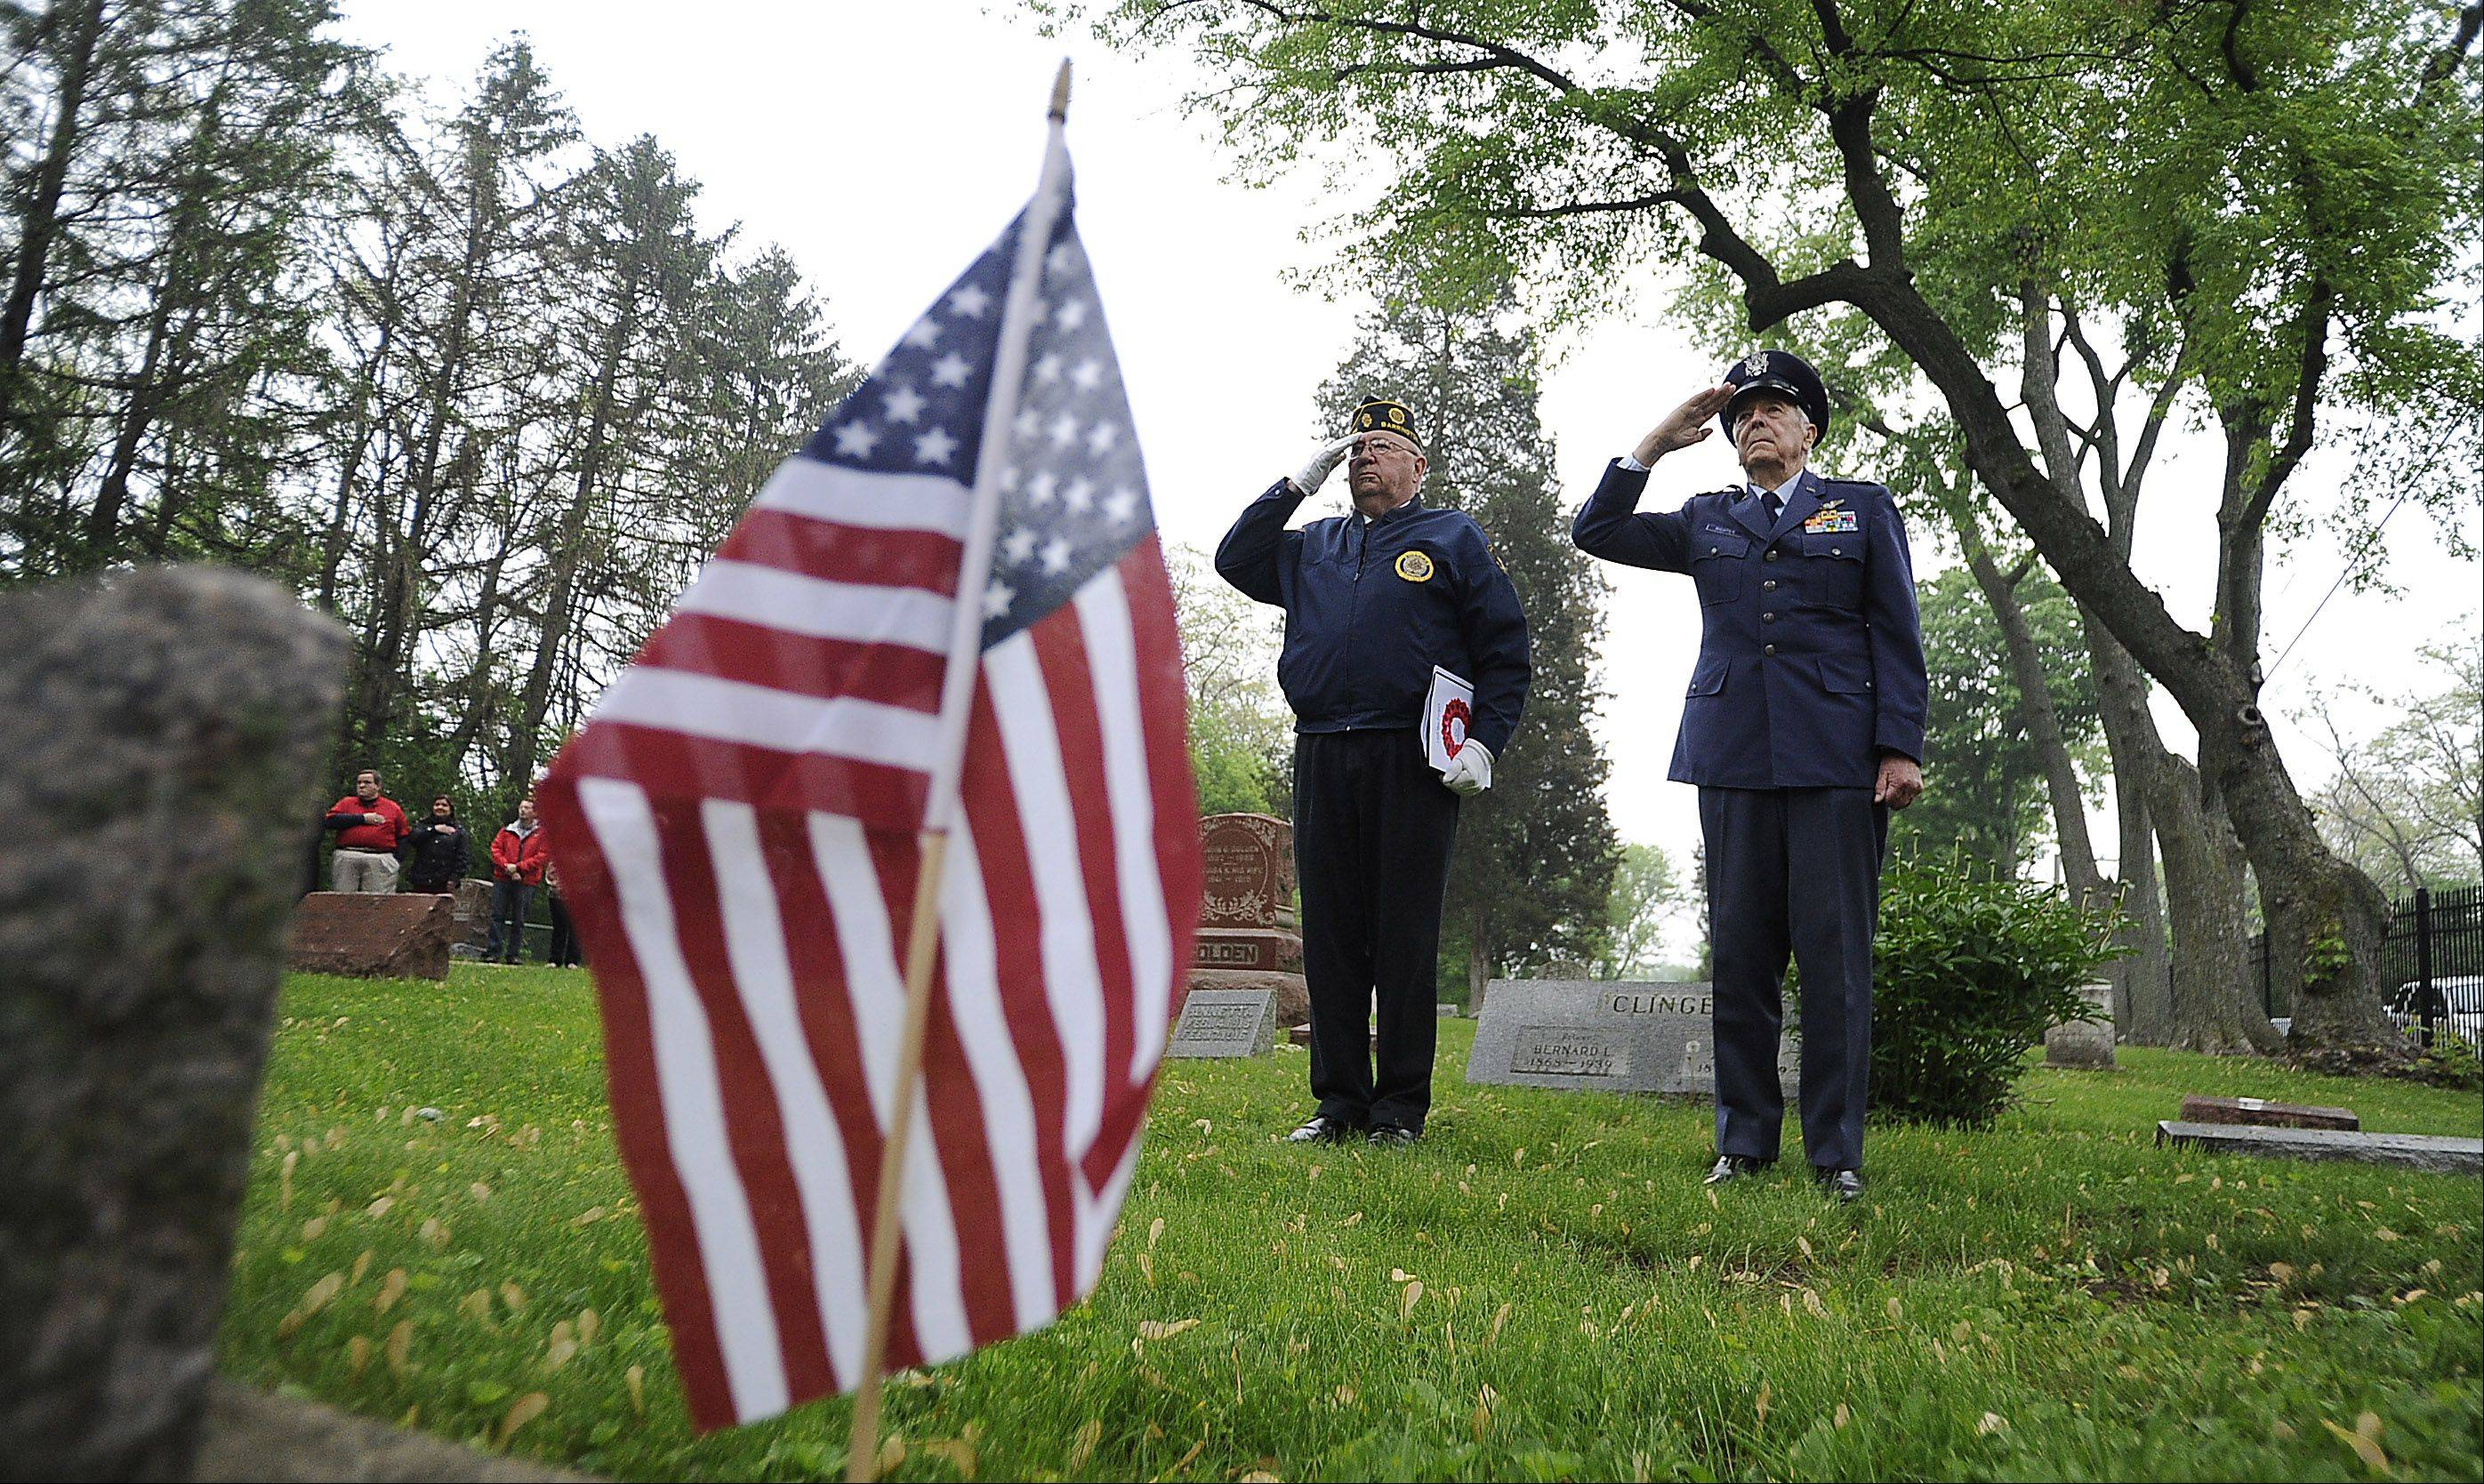 Bob Kruse of Barrington from American Legion 158 who served in the Korean War salutes along with Hal Richter of the Veteran of Foreign War post 7706 serving in Korea and World War II take part in the Memorial Day Ceremony at White Cemetery in Barrington on Monday.